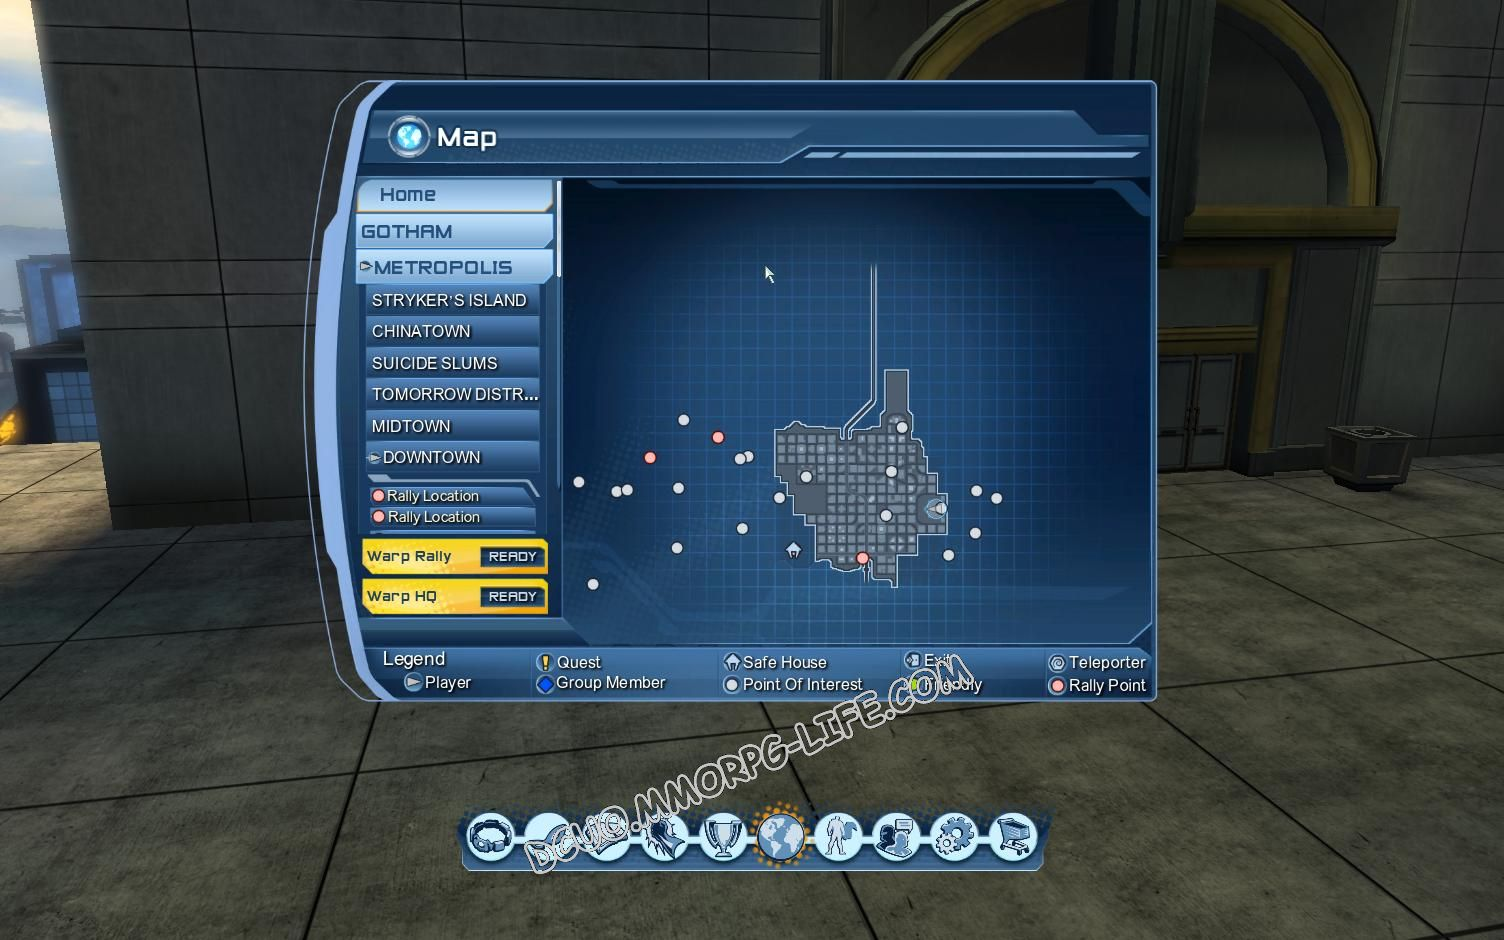 Briefing: LexCorp, step 3 LexCorp: Threats  image 1553 middle size